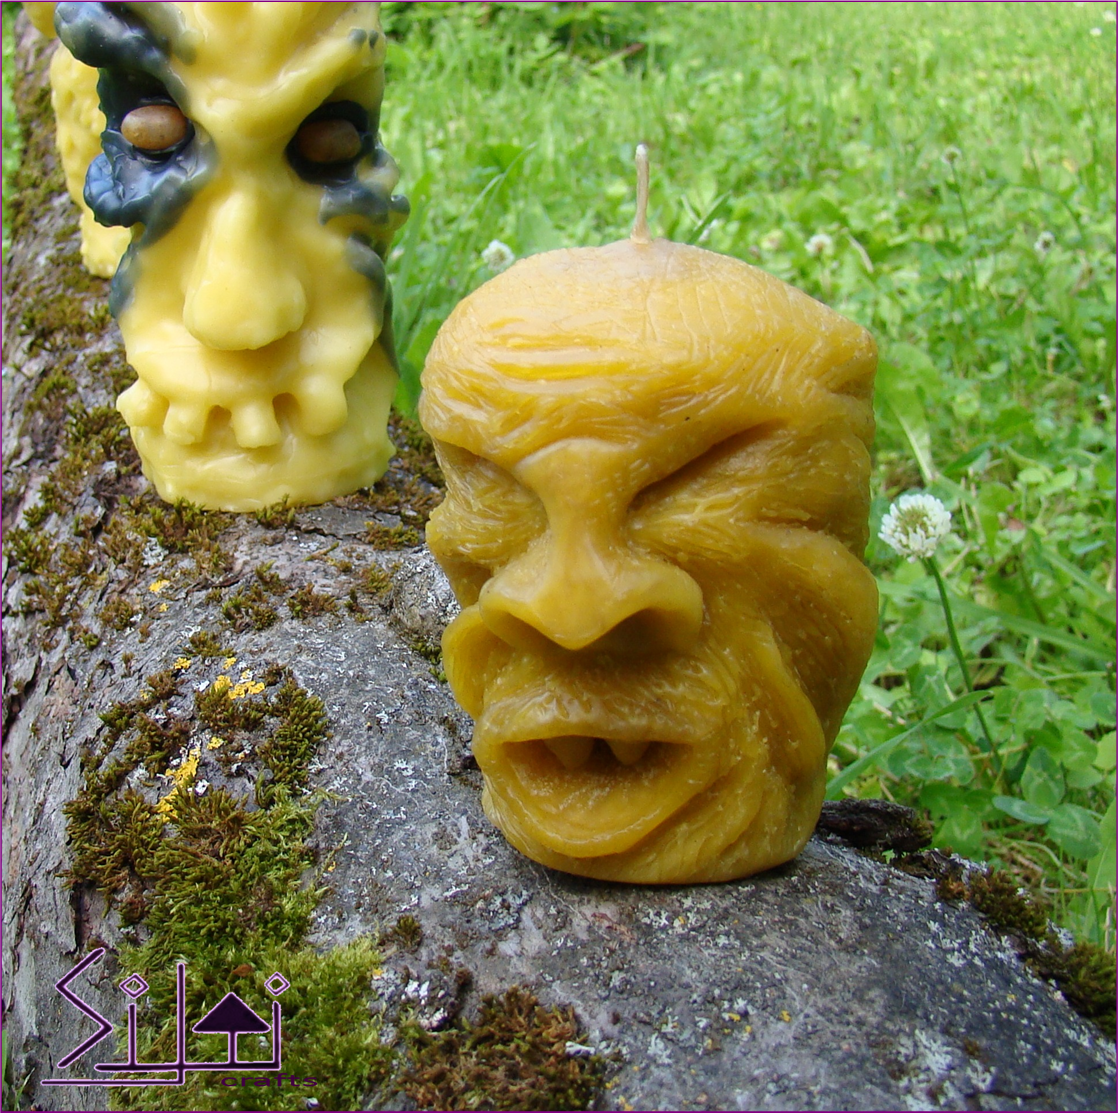 handsculpted candle natural beeswax beast monster halloween eco manly scary odd teeth sculpted